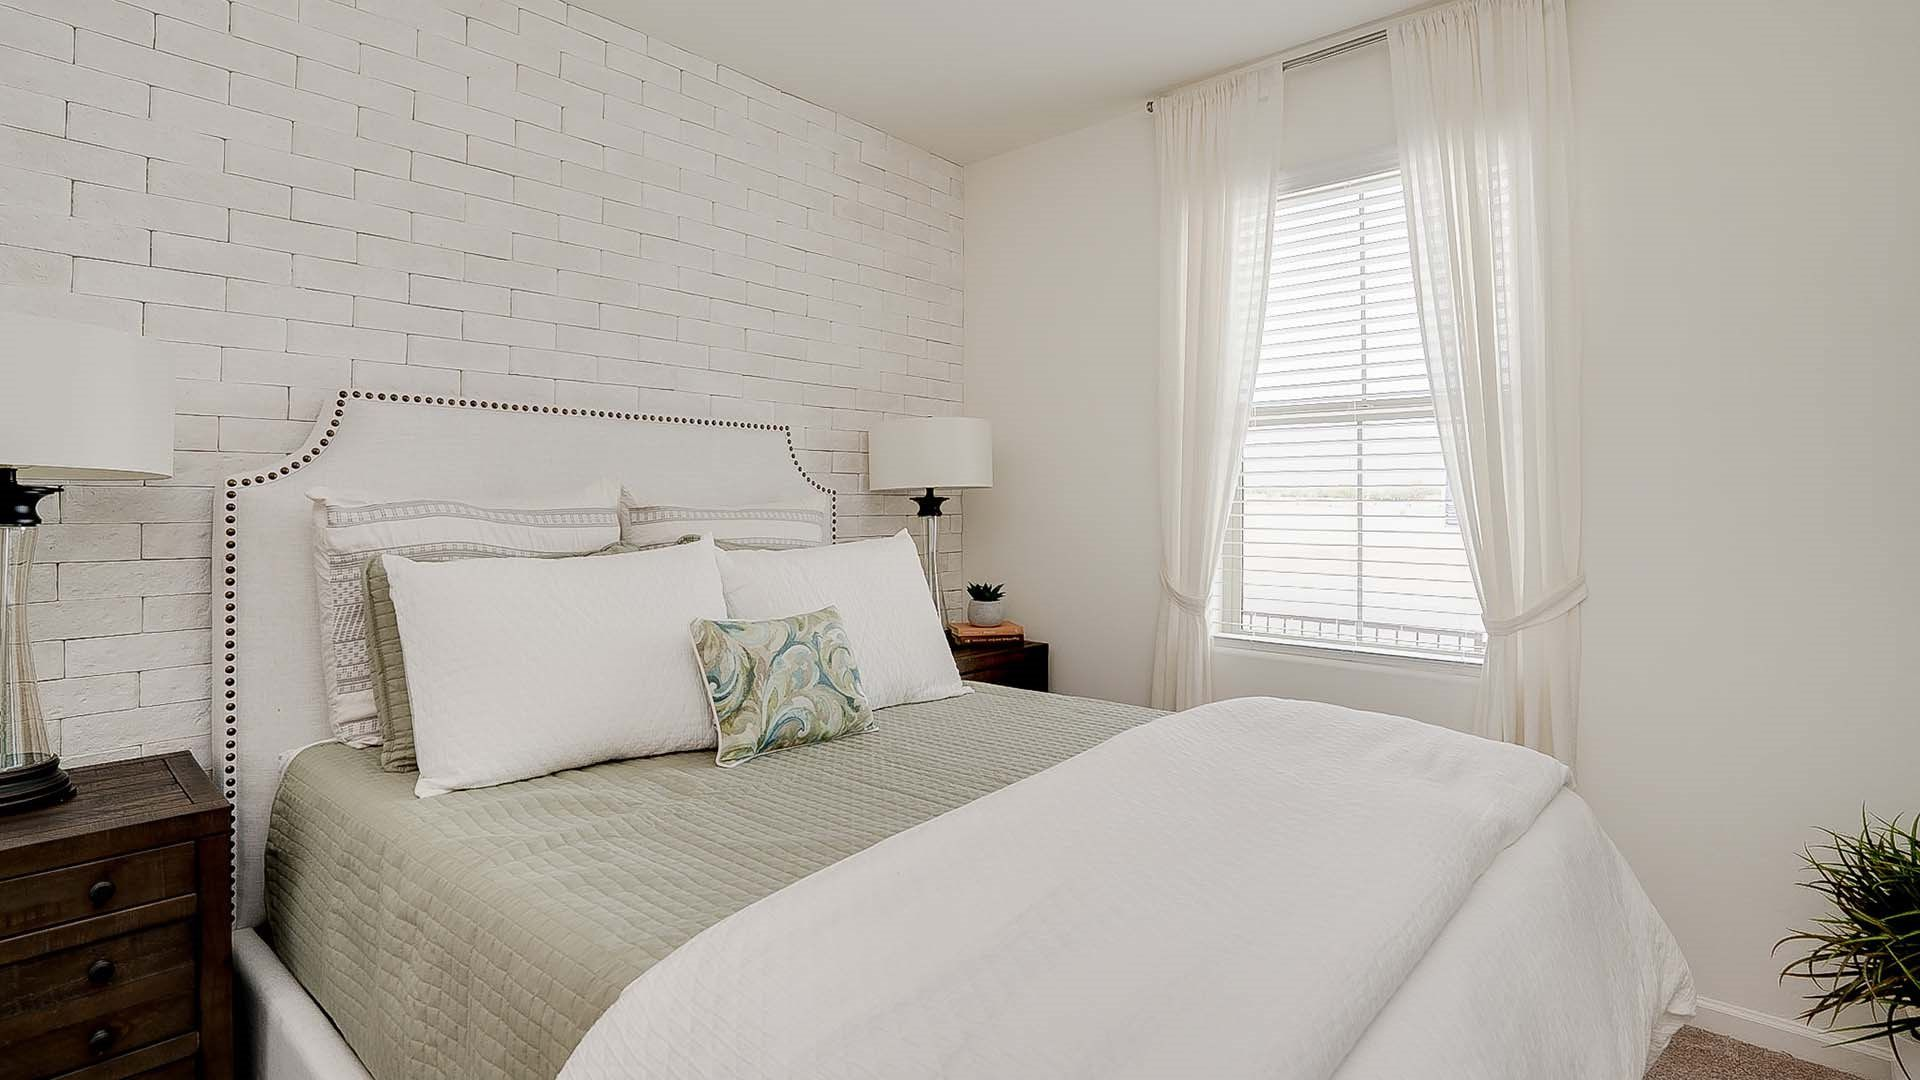 Bedroom featured in the Ocotillo By Lennar in Tucson, AZ